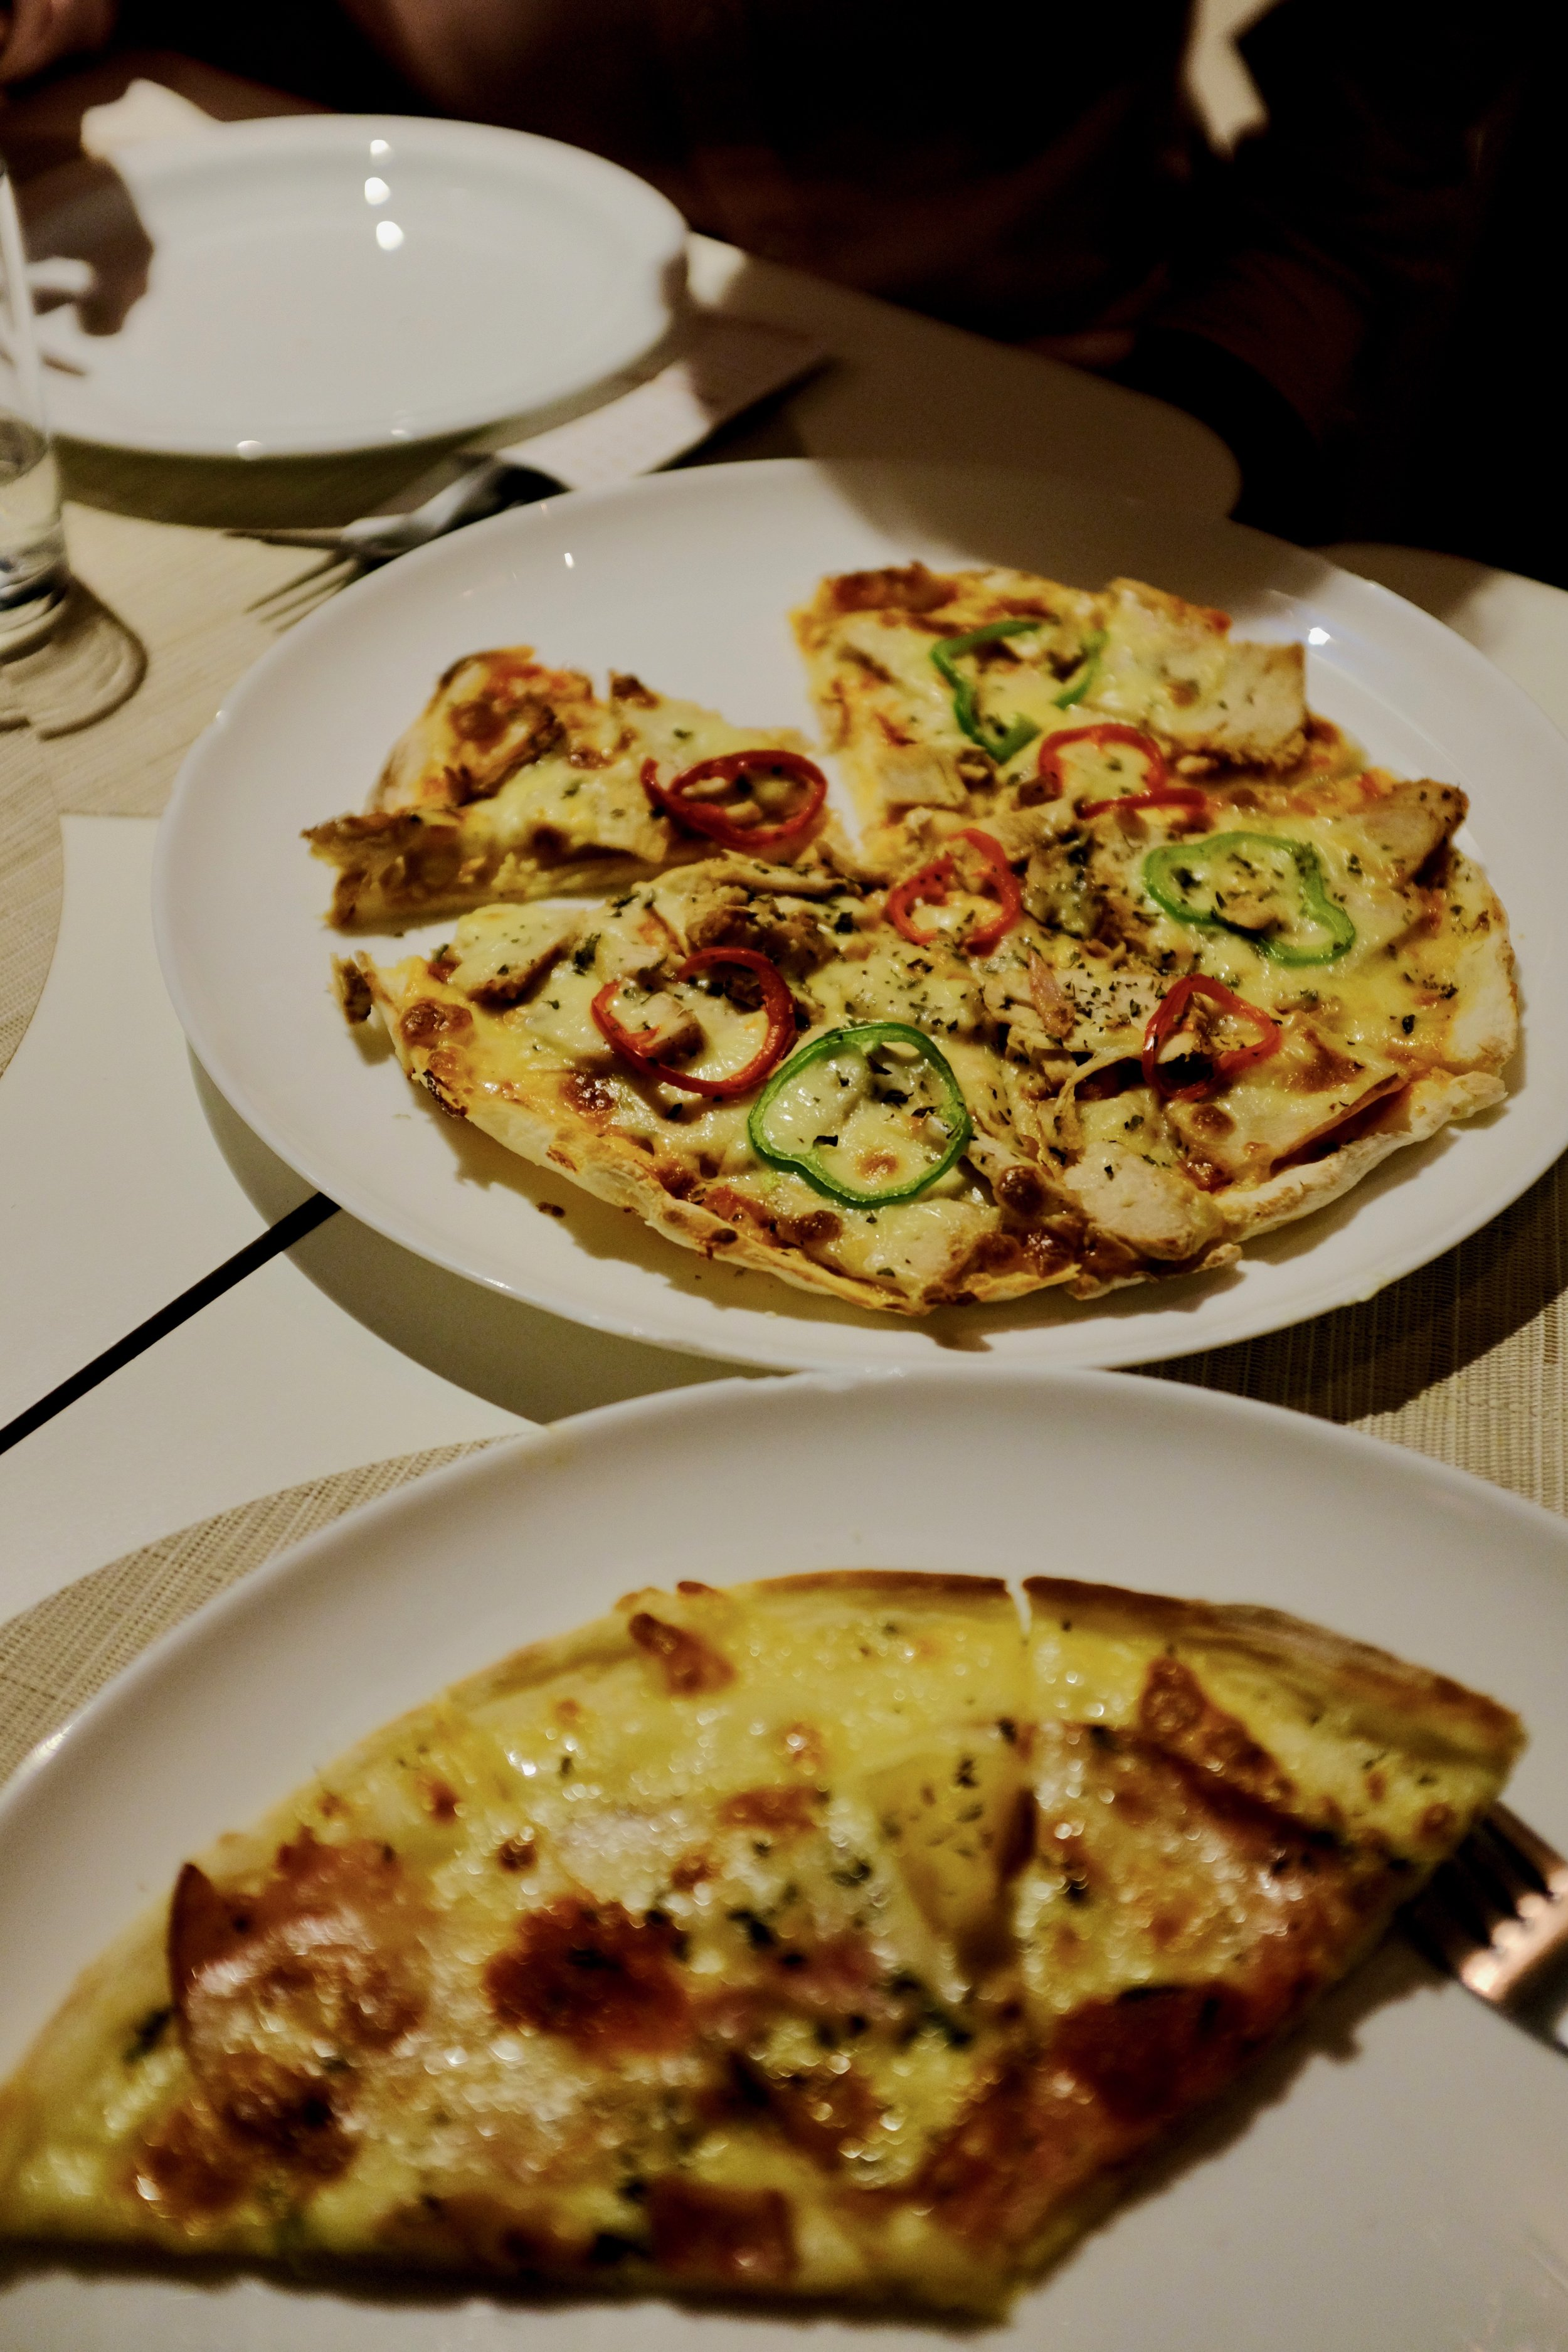 Moroccan Pizza from Mandala Pizzeria in Chefchaouen, Morocco.